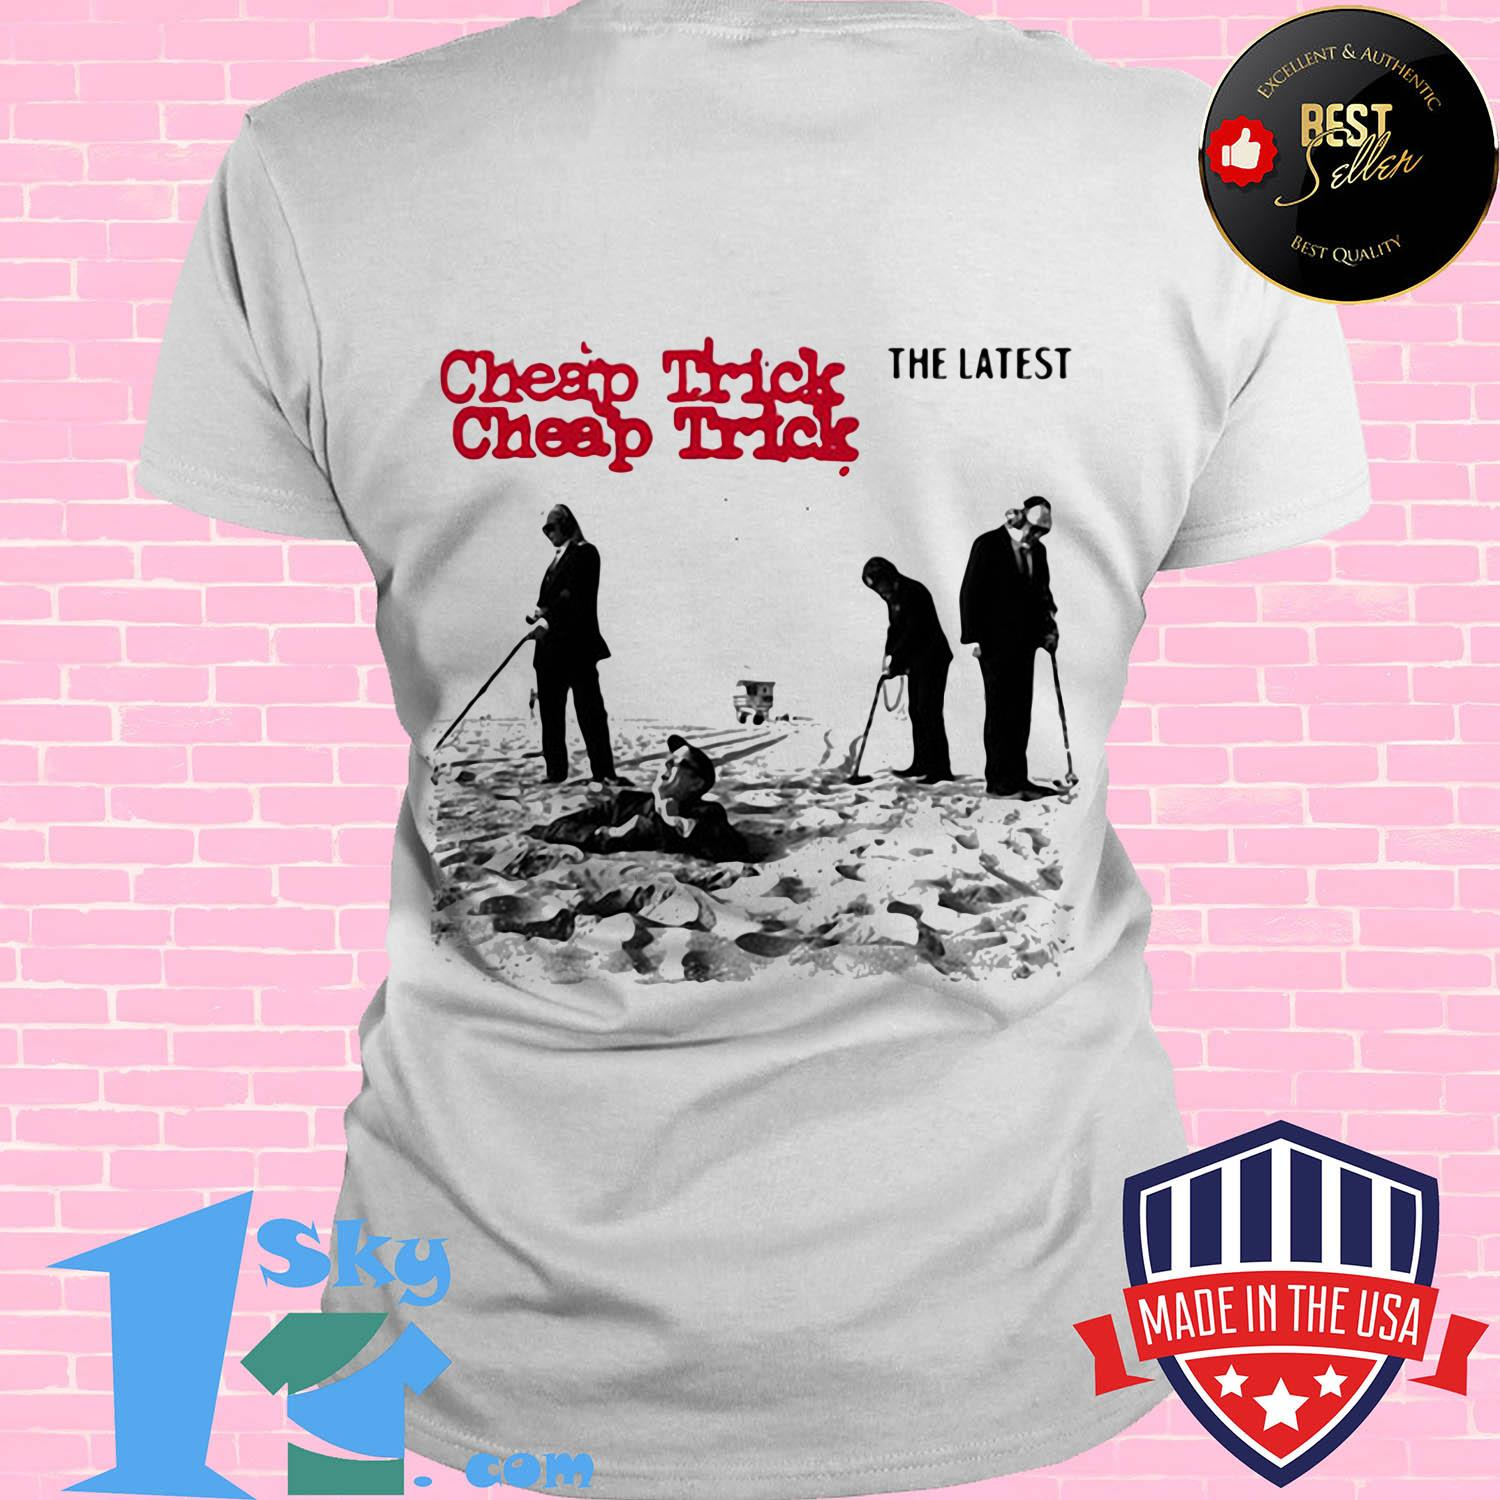 cheap trick the latest rock band ladies tee - Cheap Trick The Latest Rock Band shirt